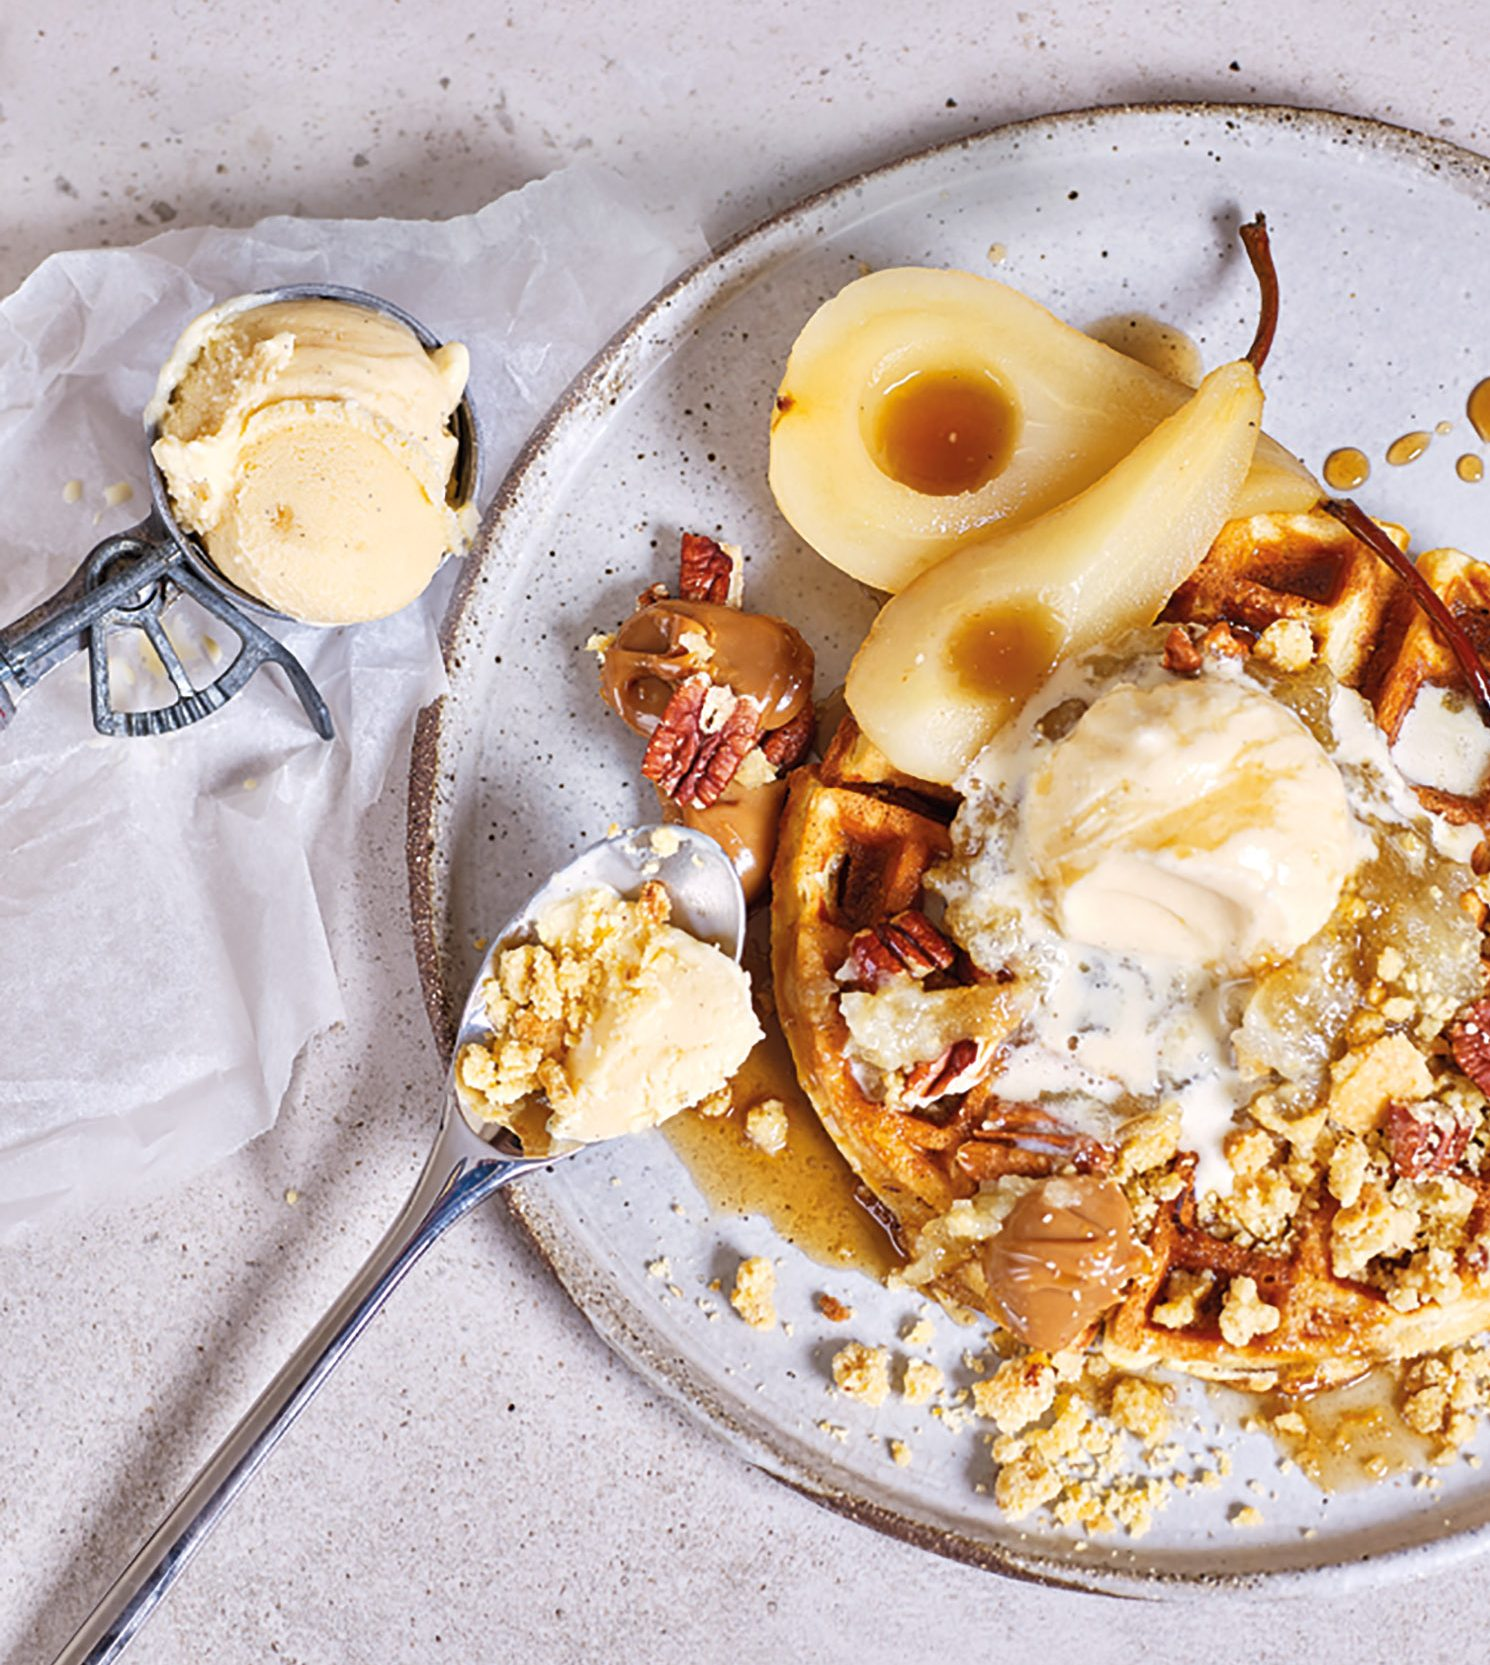 Autumn/Winter Waffles with poached pears, pecan crumble, salted caramel sauce